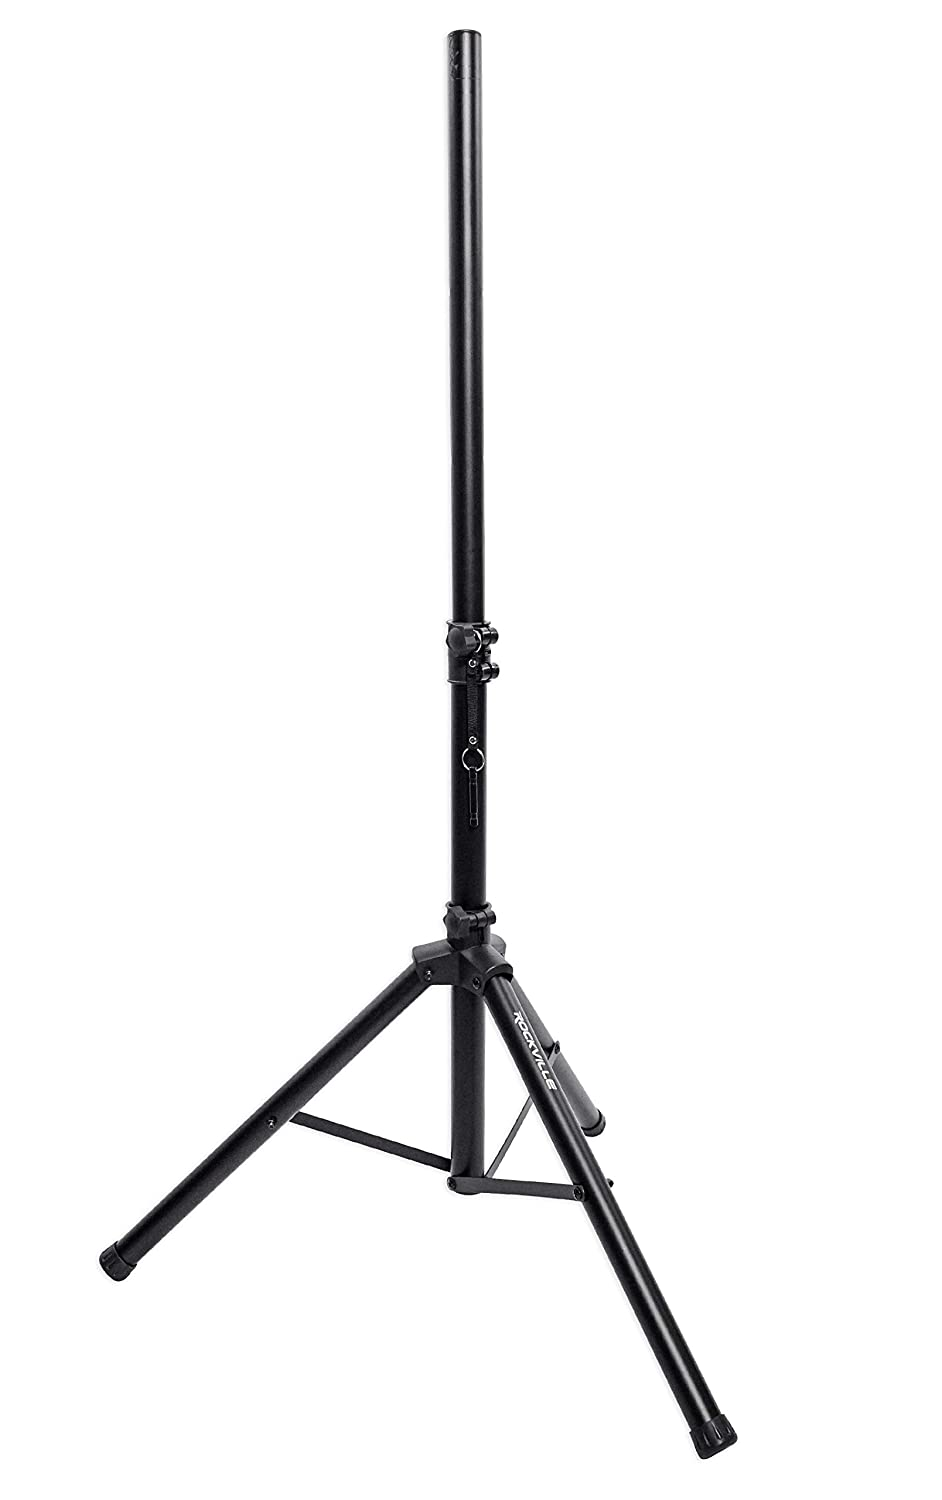 Rockville Package Pa System Mixer Amp 15 Inch Speakers Stands Mics Bluetooth Rpg2x15 Dynamic Mic Amplifier To Use Speaker As Microphone Electronic Musical Instruments